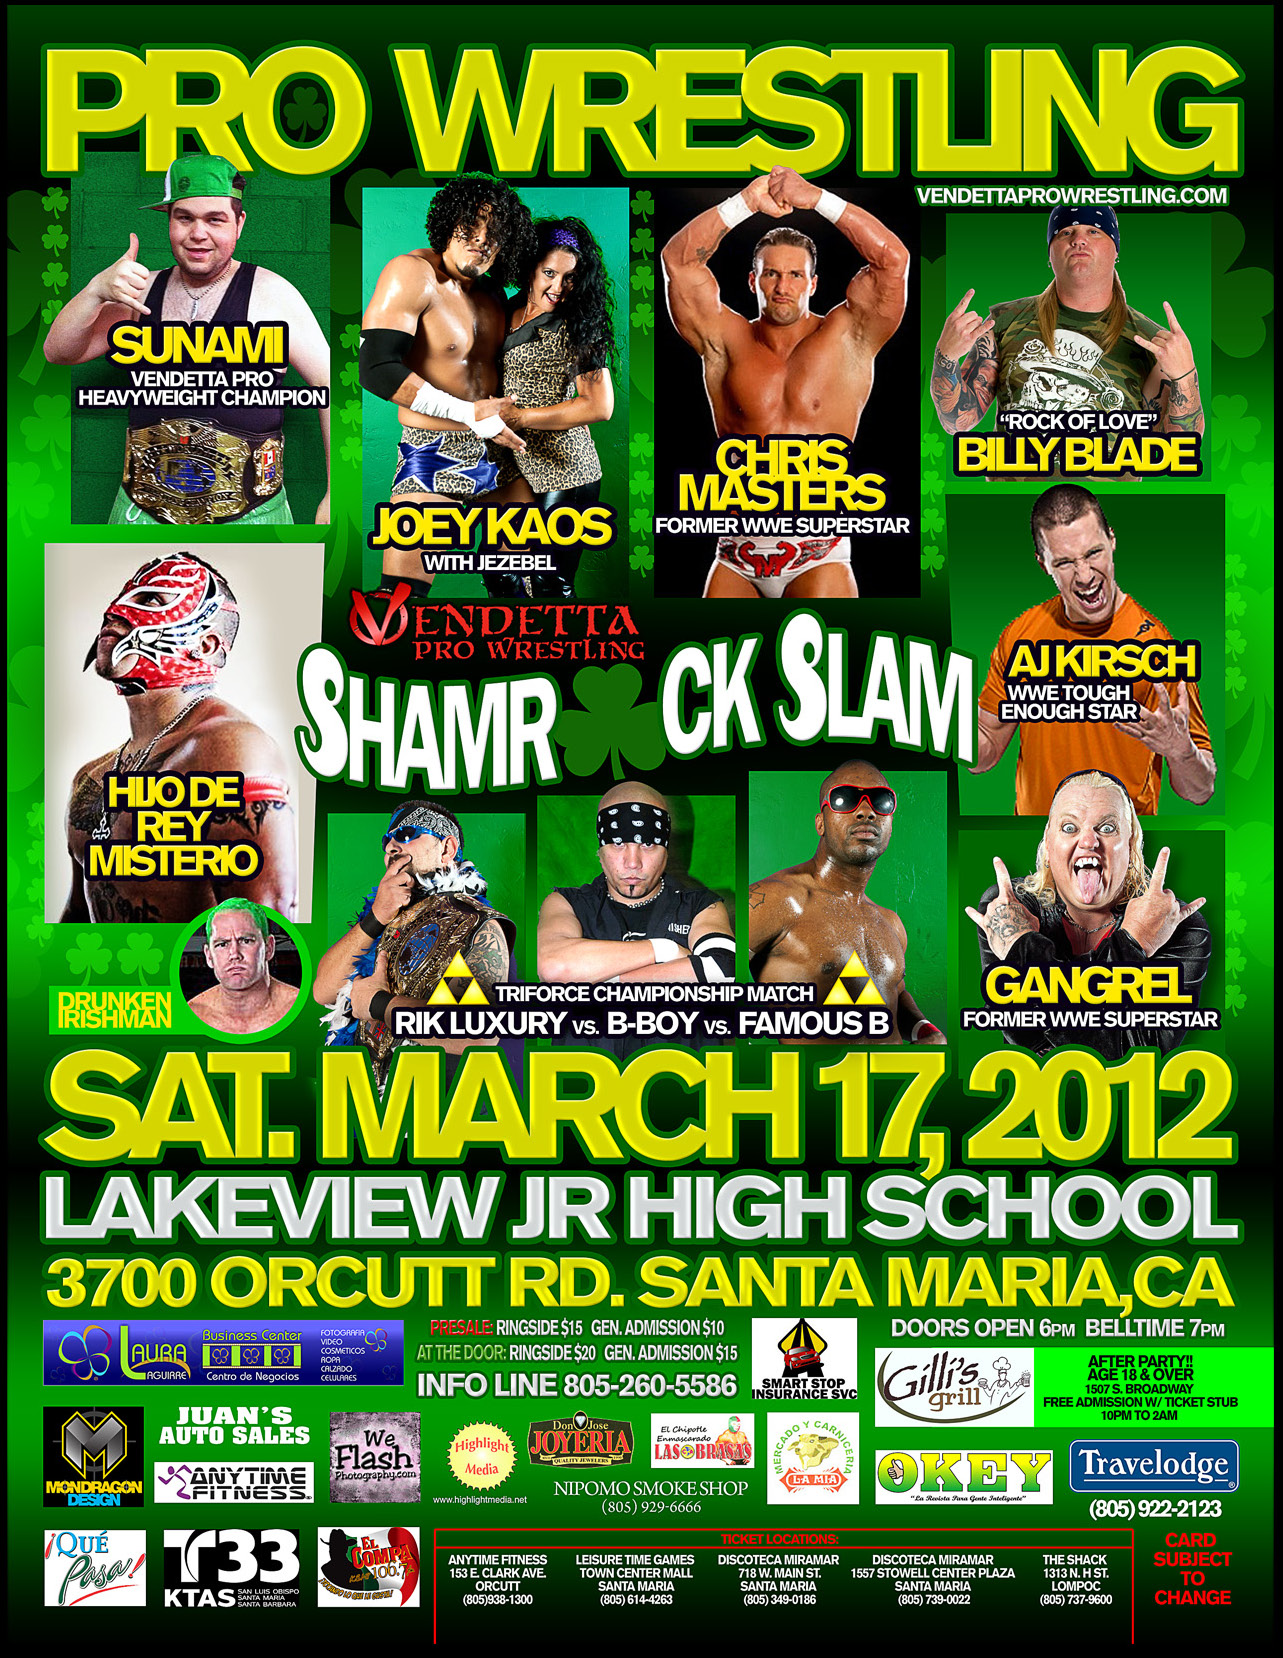 Shamrock Slam 2012 English event flyer